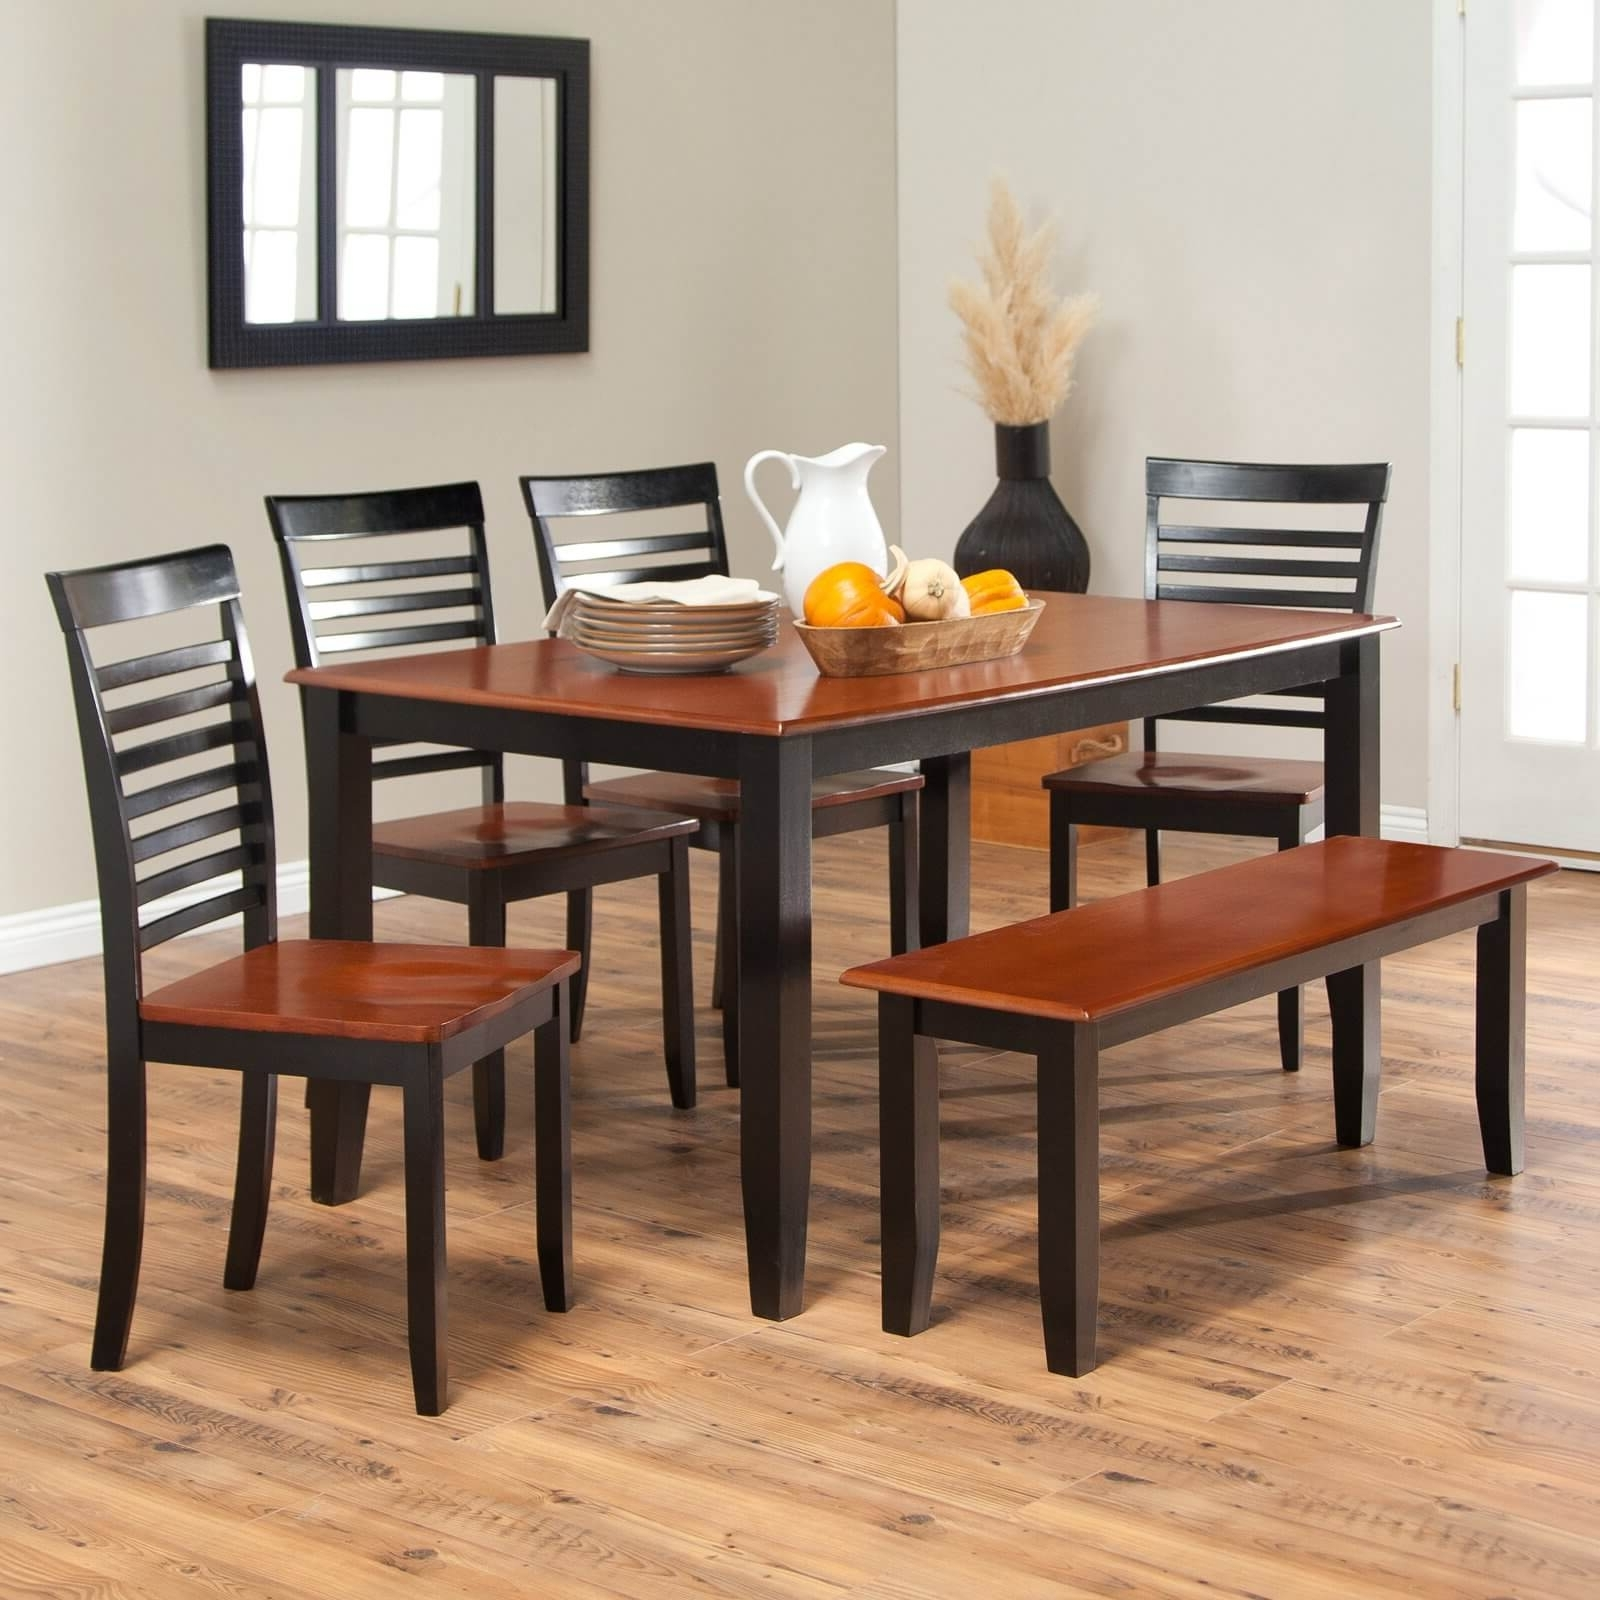 26 Dining Room Sets (Big And Small) With Bench Seating (2018) Inside Most Current Compact Dining Tables And Chairs (View 18 of 25)